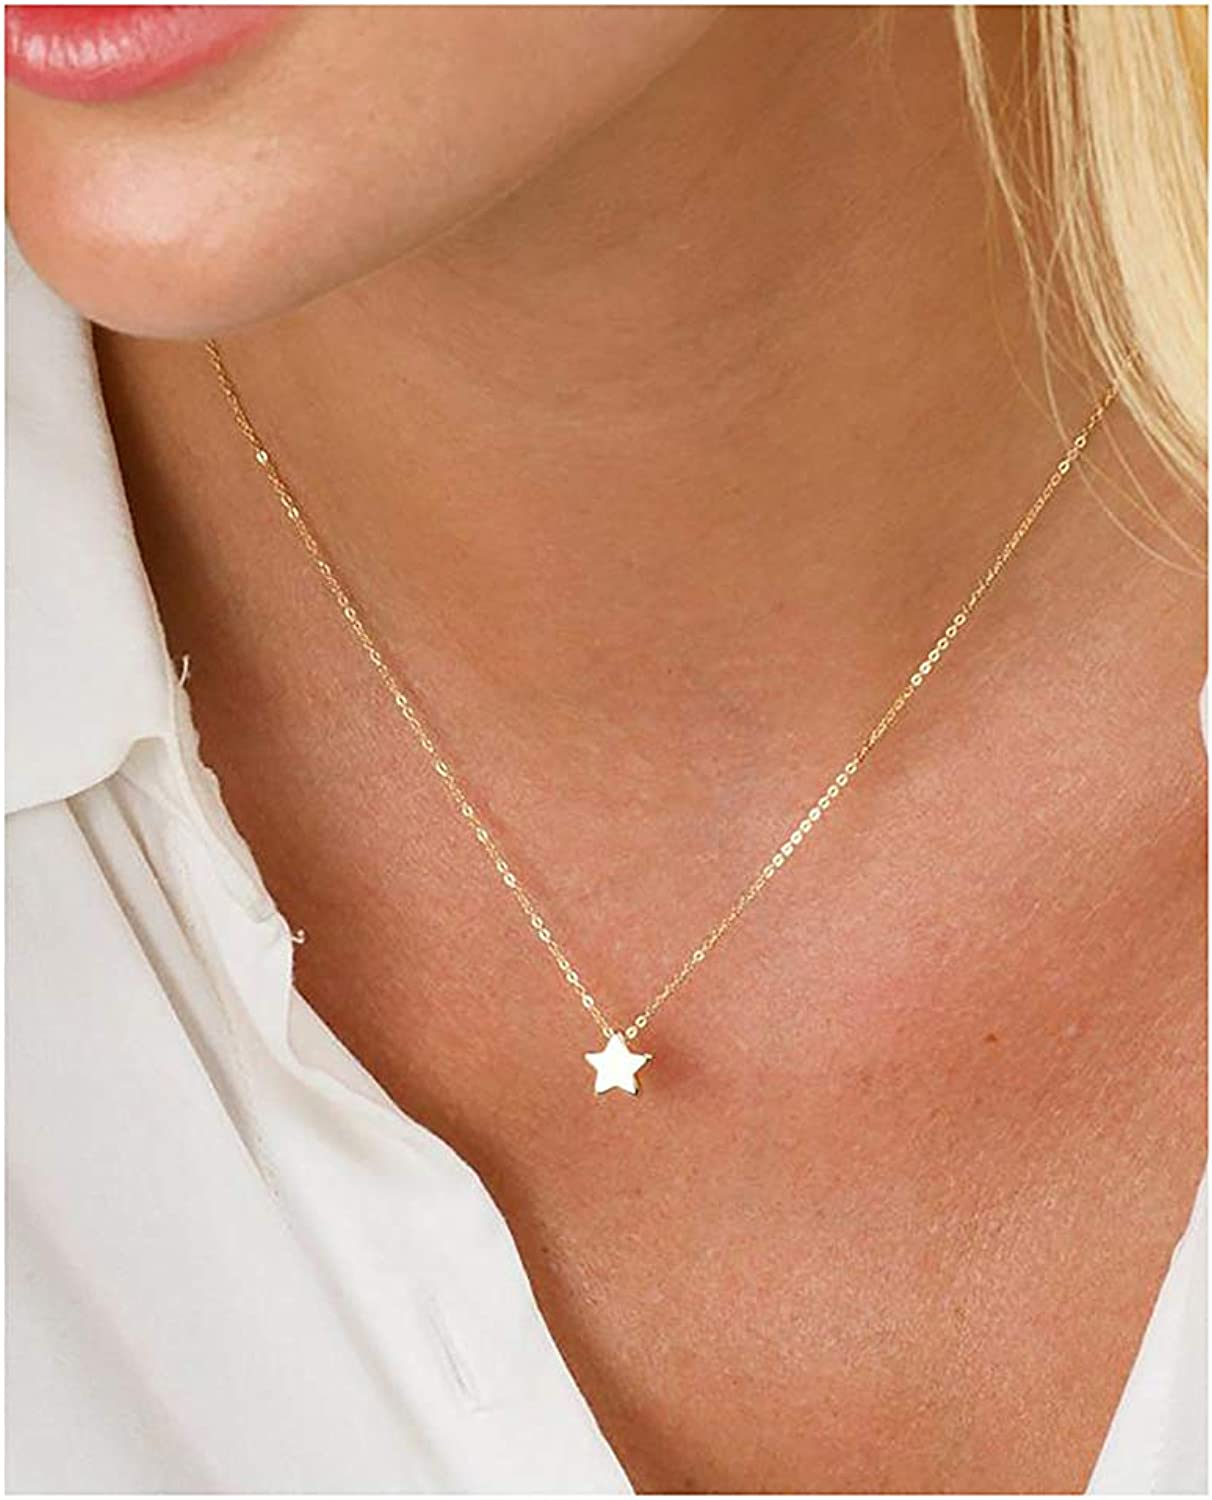 itianxi Dainty Bar Necklace for Women,Gold/Silver Cute Delicate Disc Necklcace,Trendy Elegant Dot Fashion Necklace